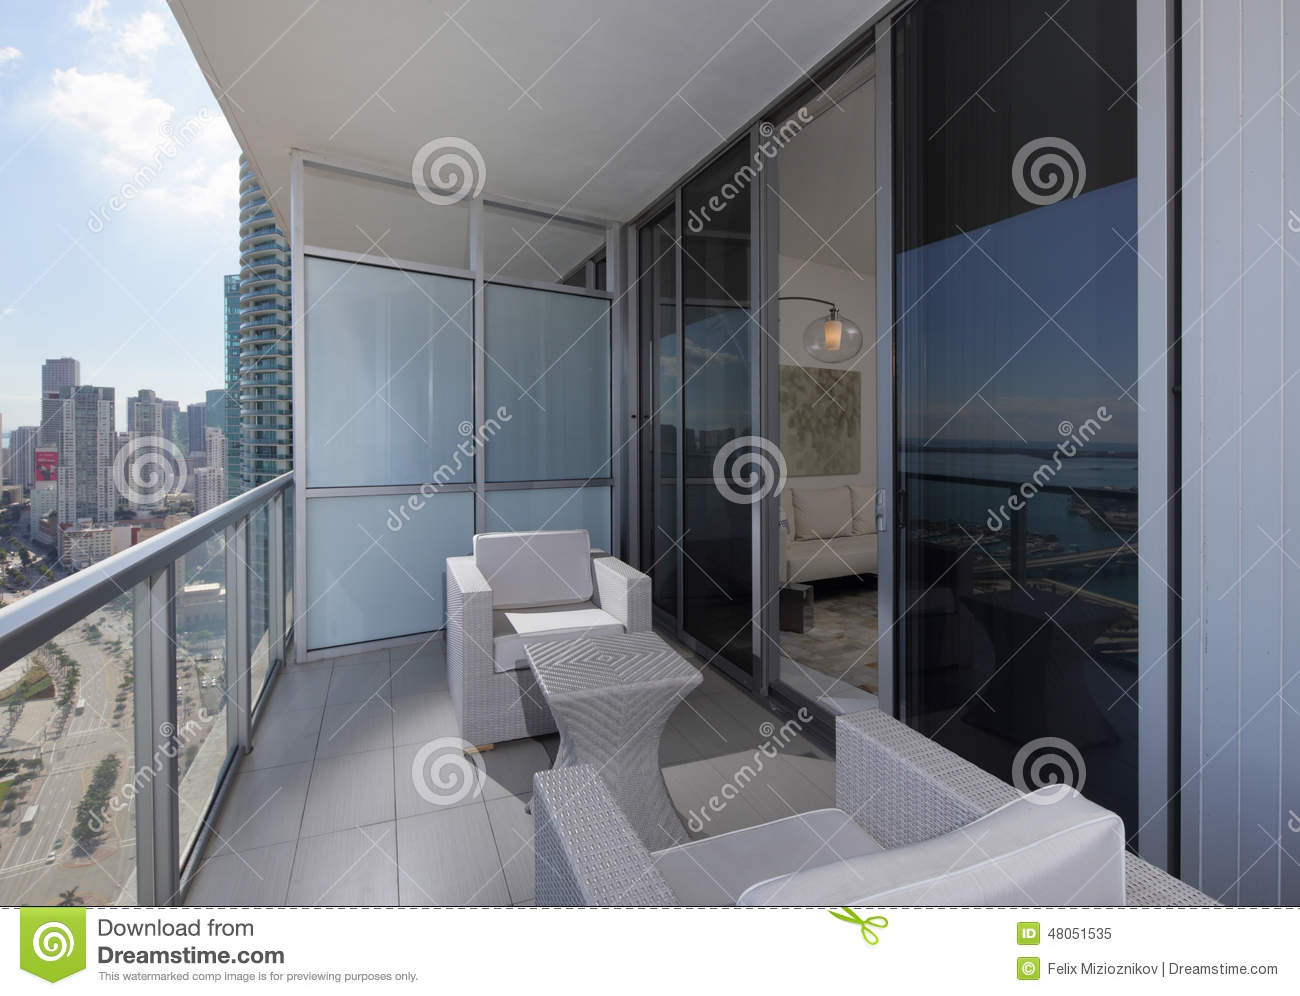 meubles modernes de balcon image stock image du condominium 48051535. Black Bedroom Furniture Sets. Home Design Ideas